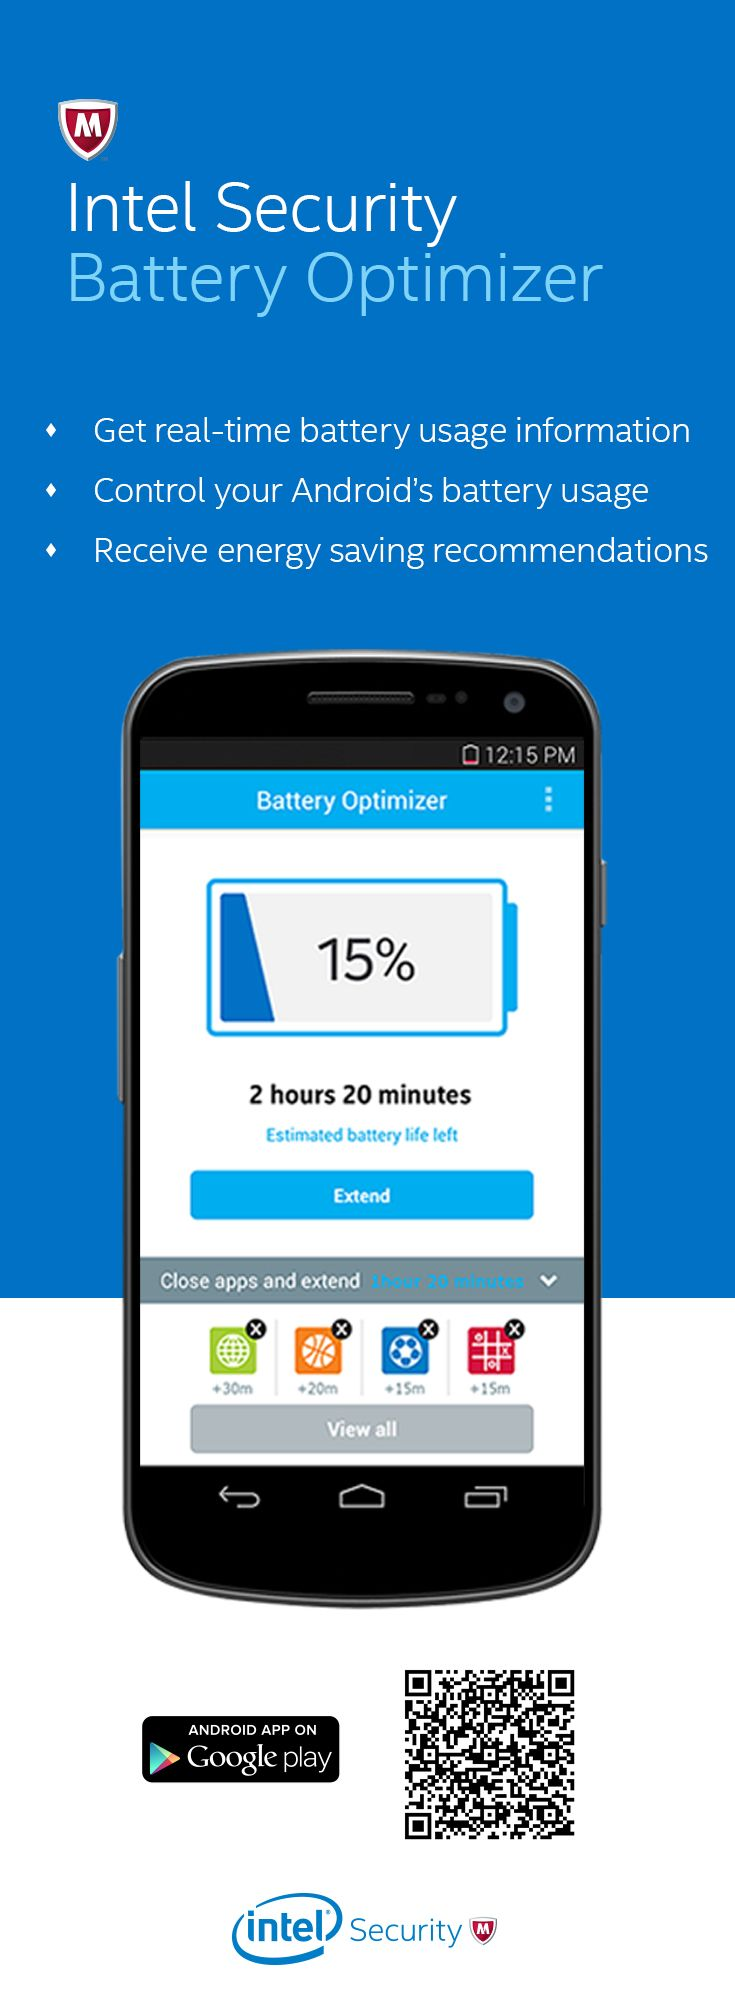 With Intel Security Battery Optimizer, knowing how much